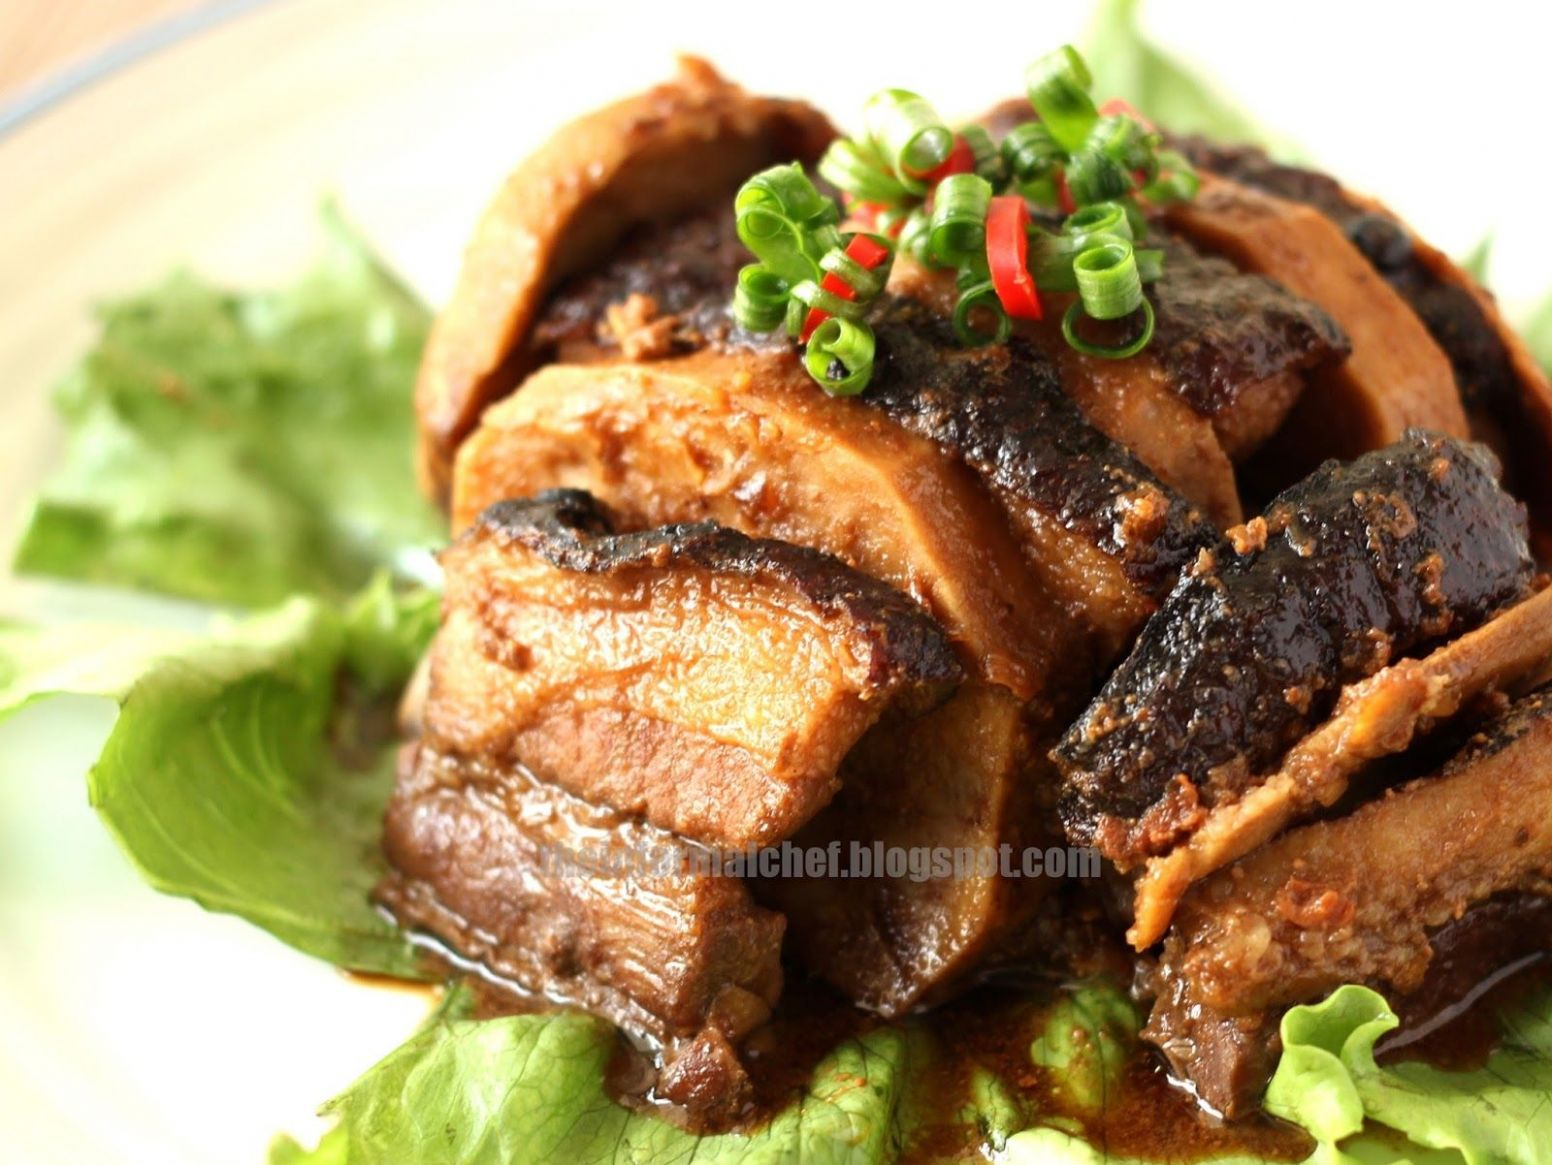 Pork Belly with Taro (Yam) / Wu Tau Kau Yoke 芋頭扣肉 | Pork belly ...